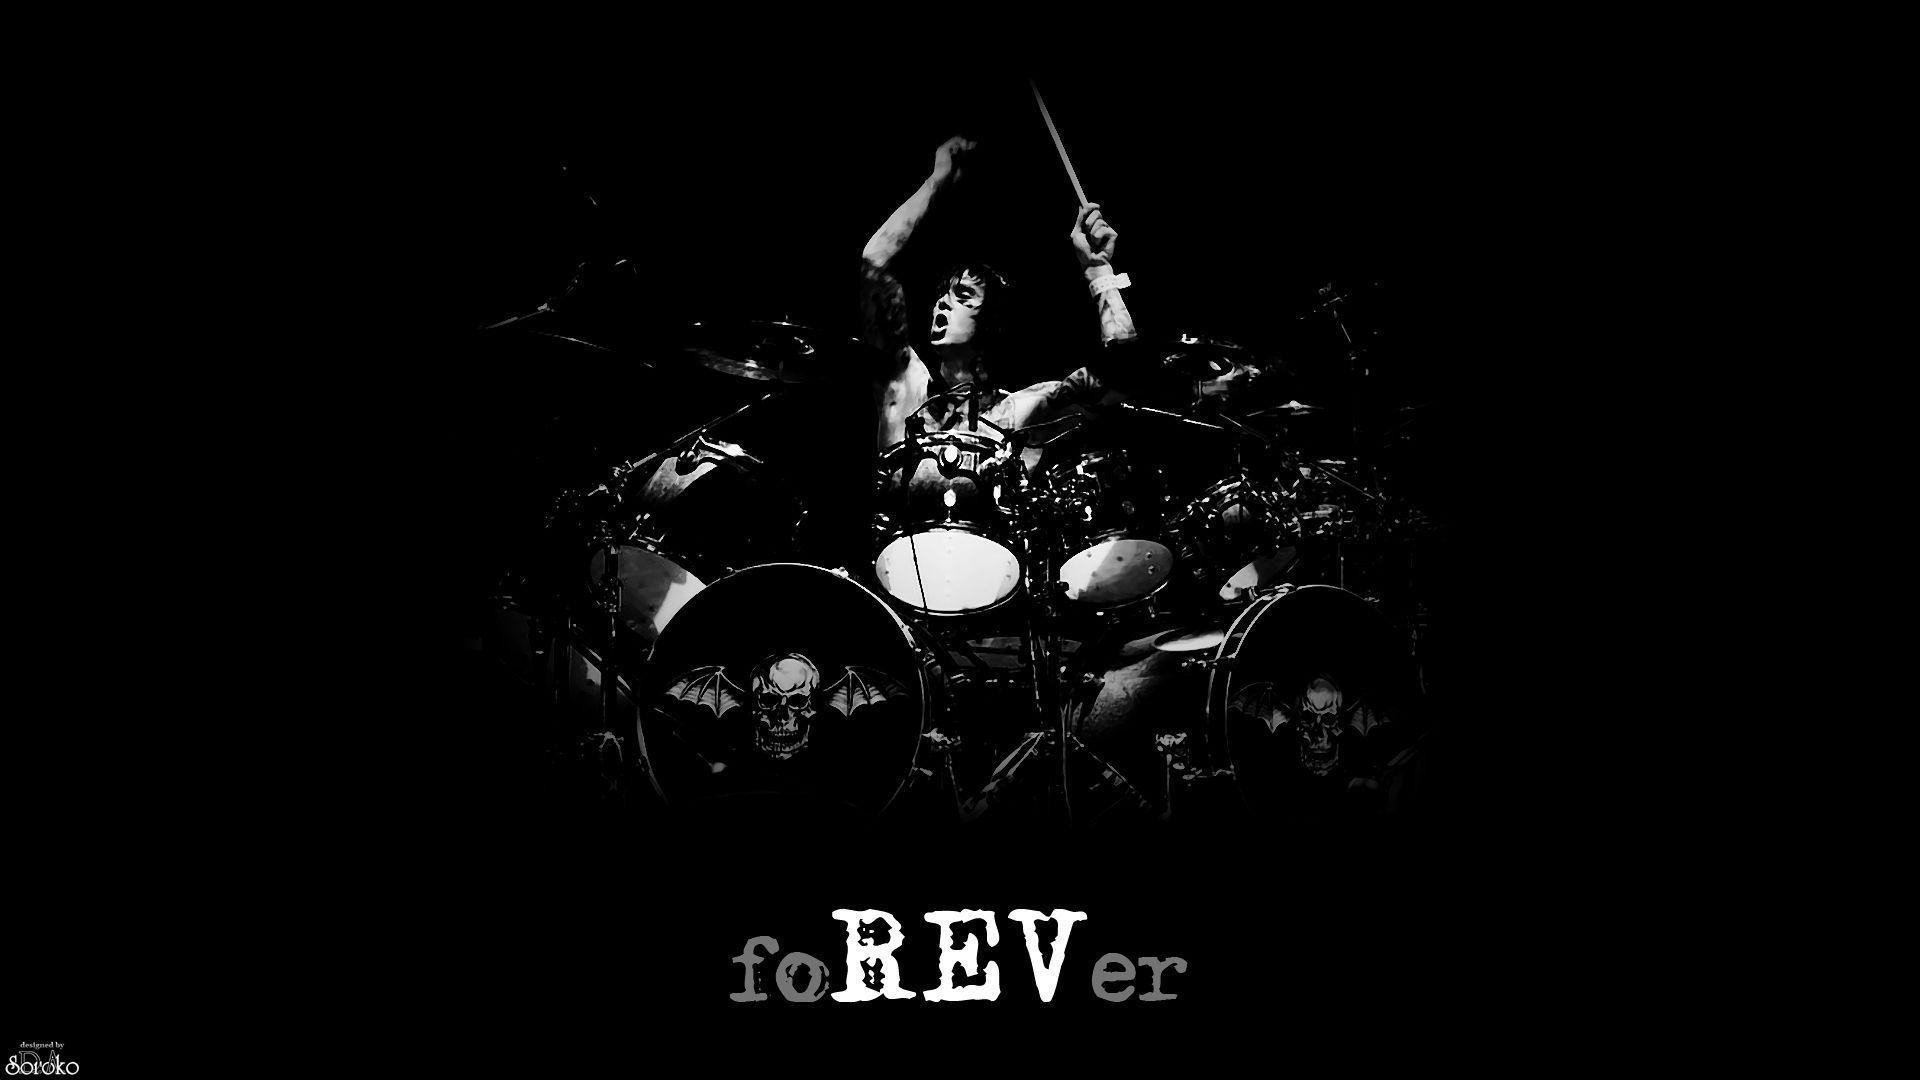 The Rev Wallpaper 64 images 1920x1080